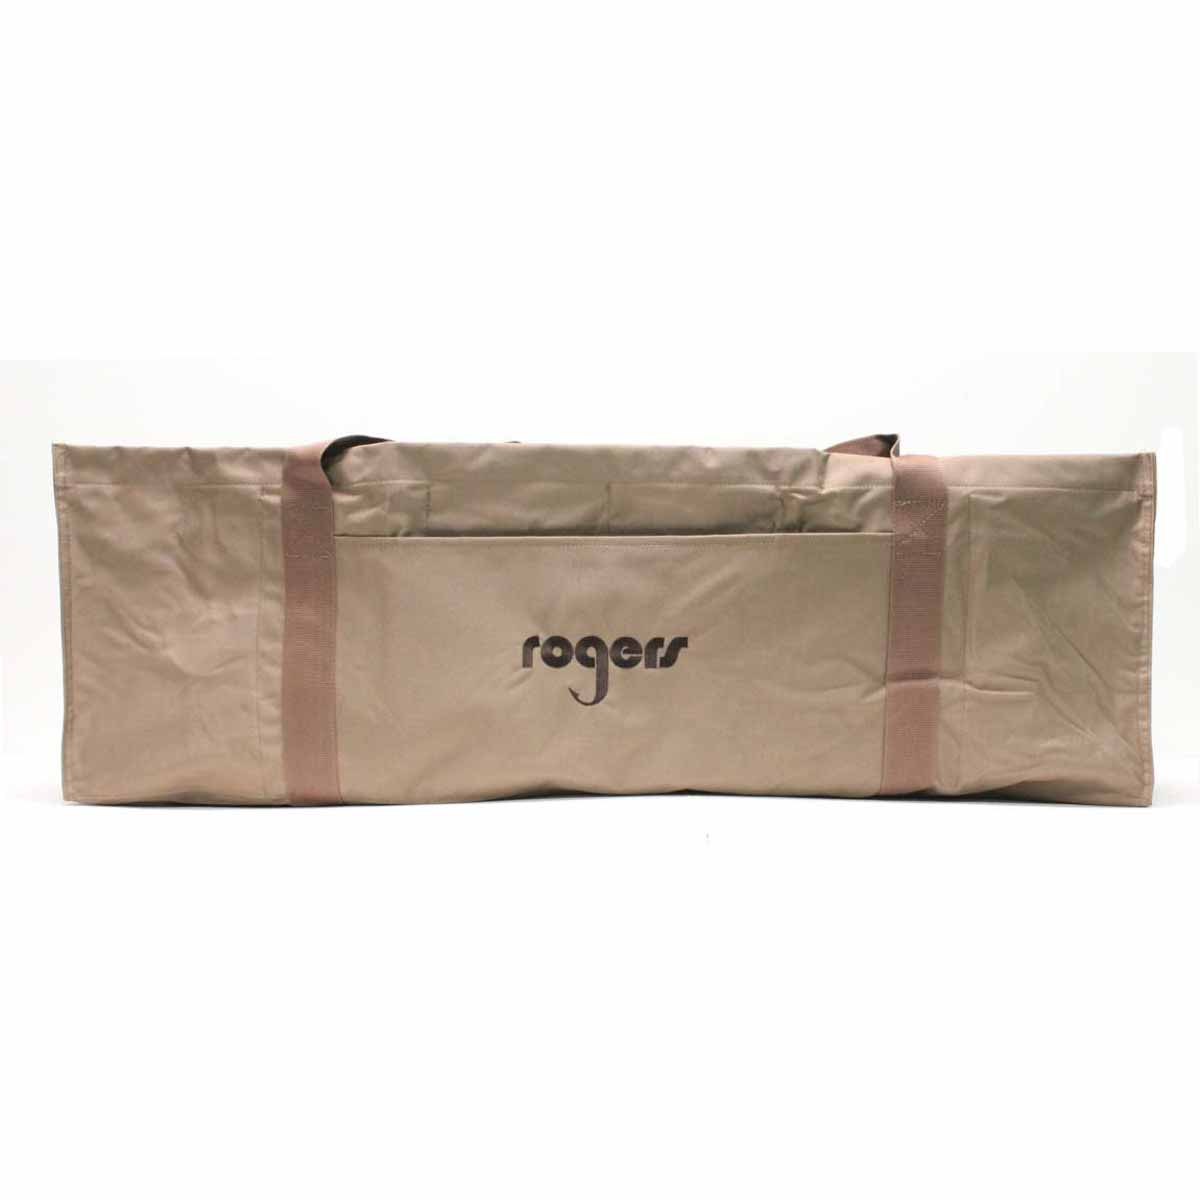 Rogers 24-Slot Teal Decoy Bag_1.jpg